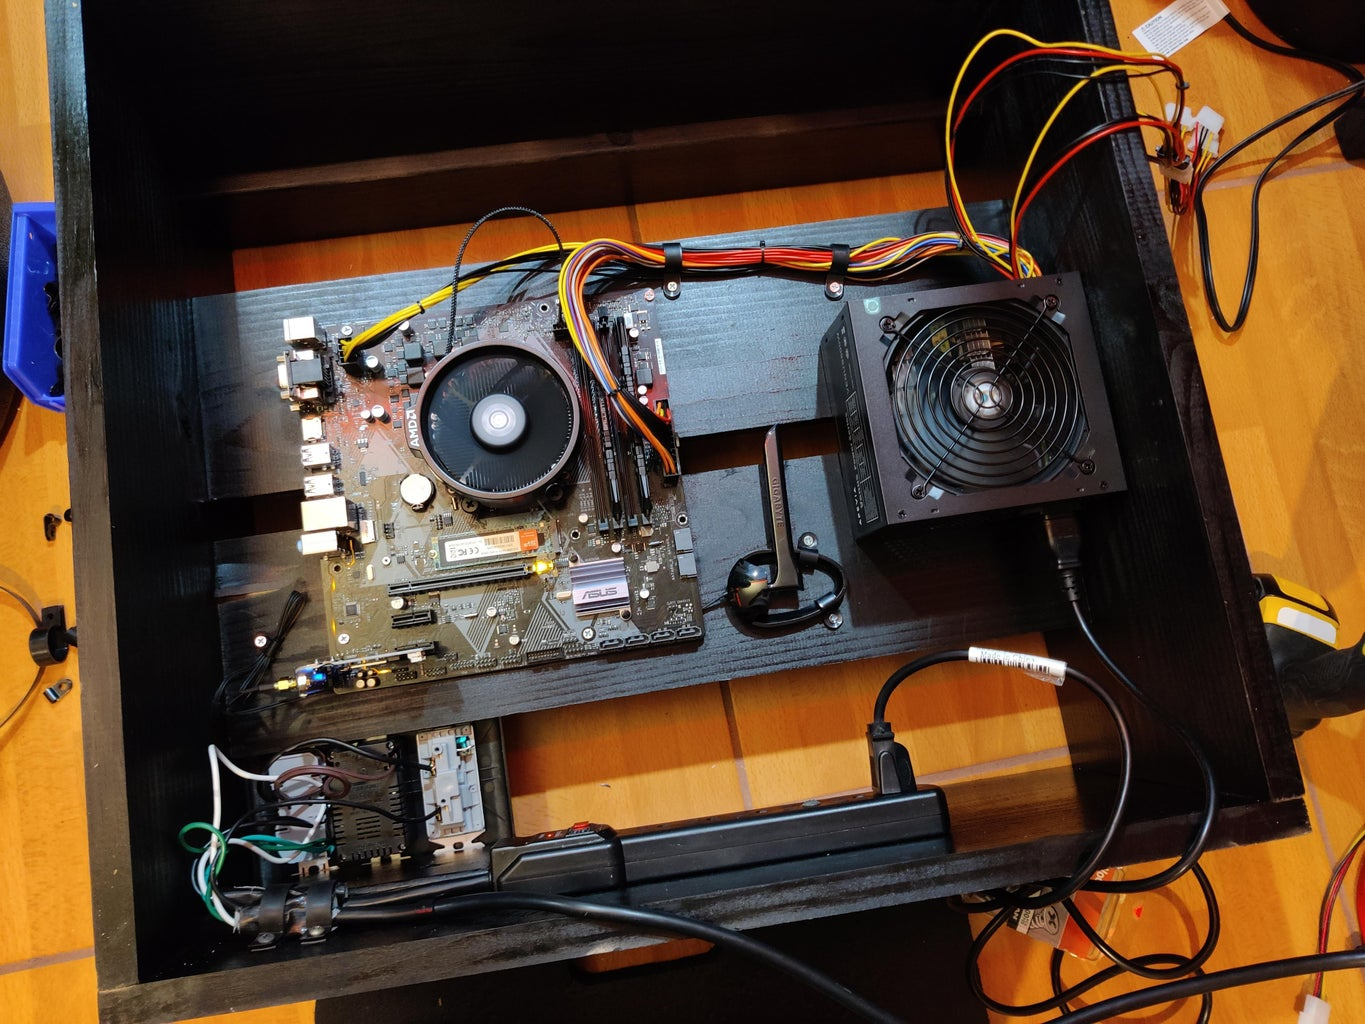 Mount Motherboard and Power Supply